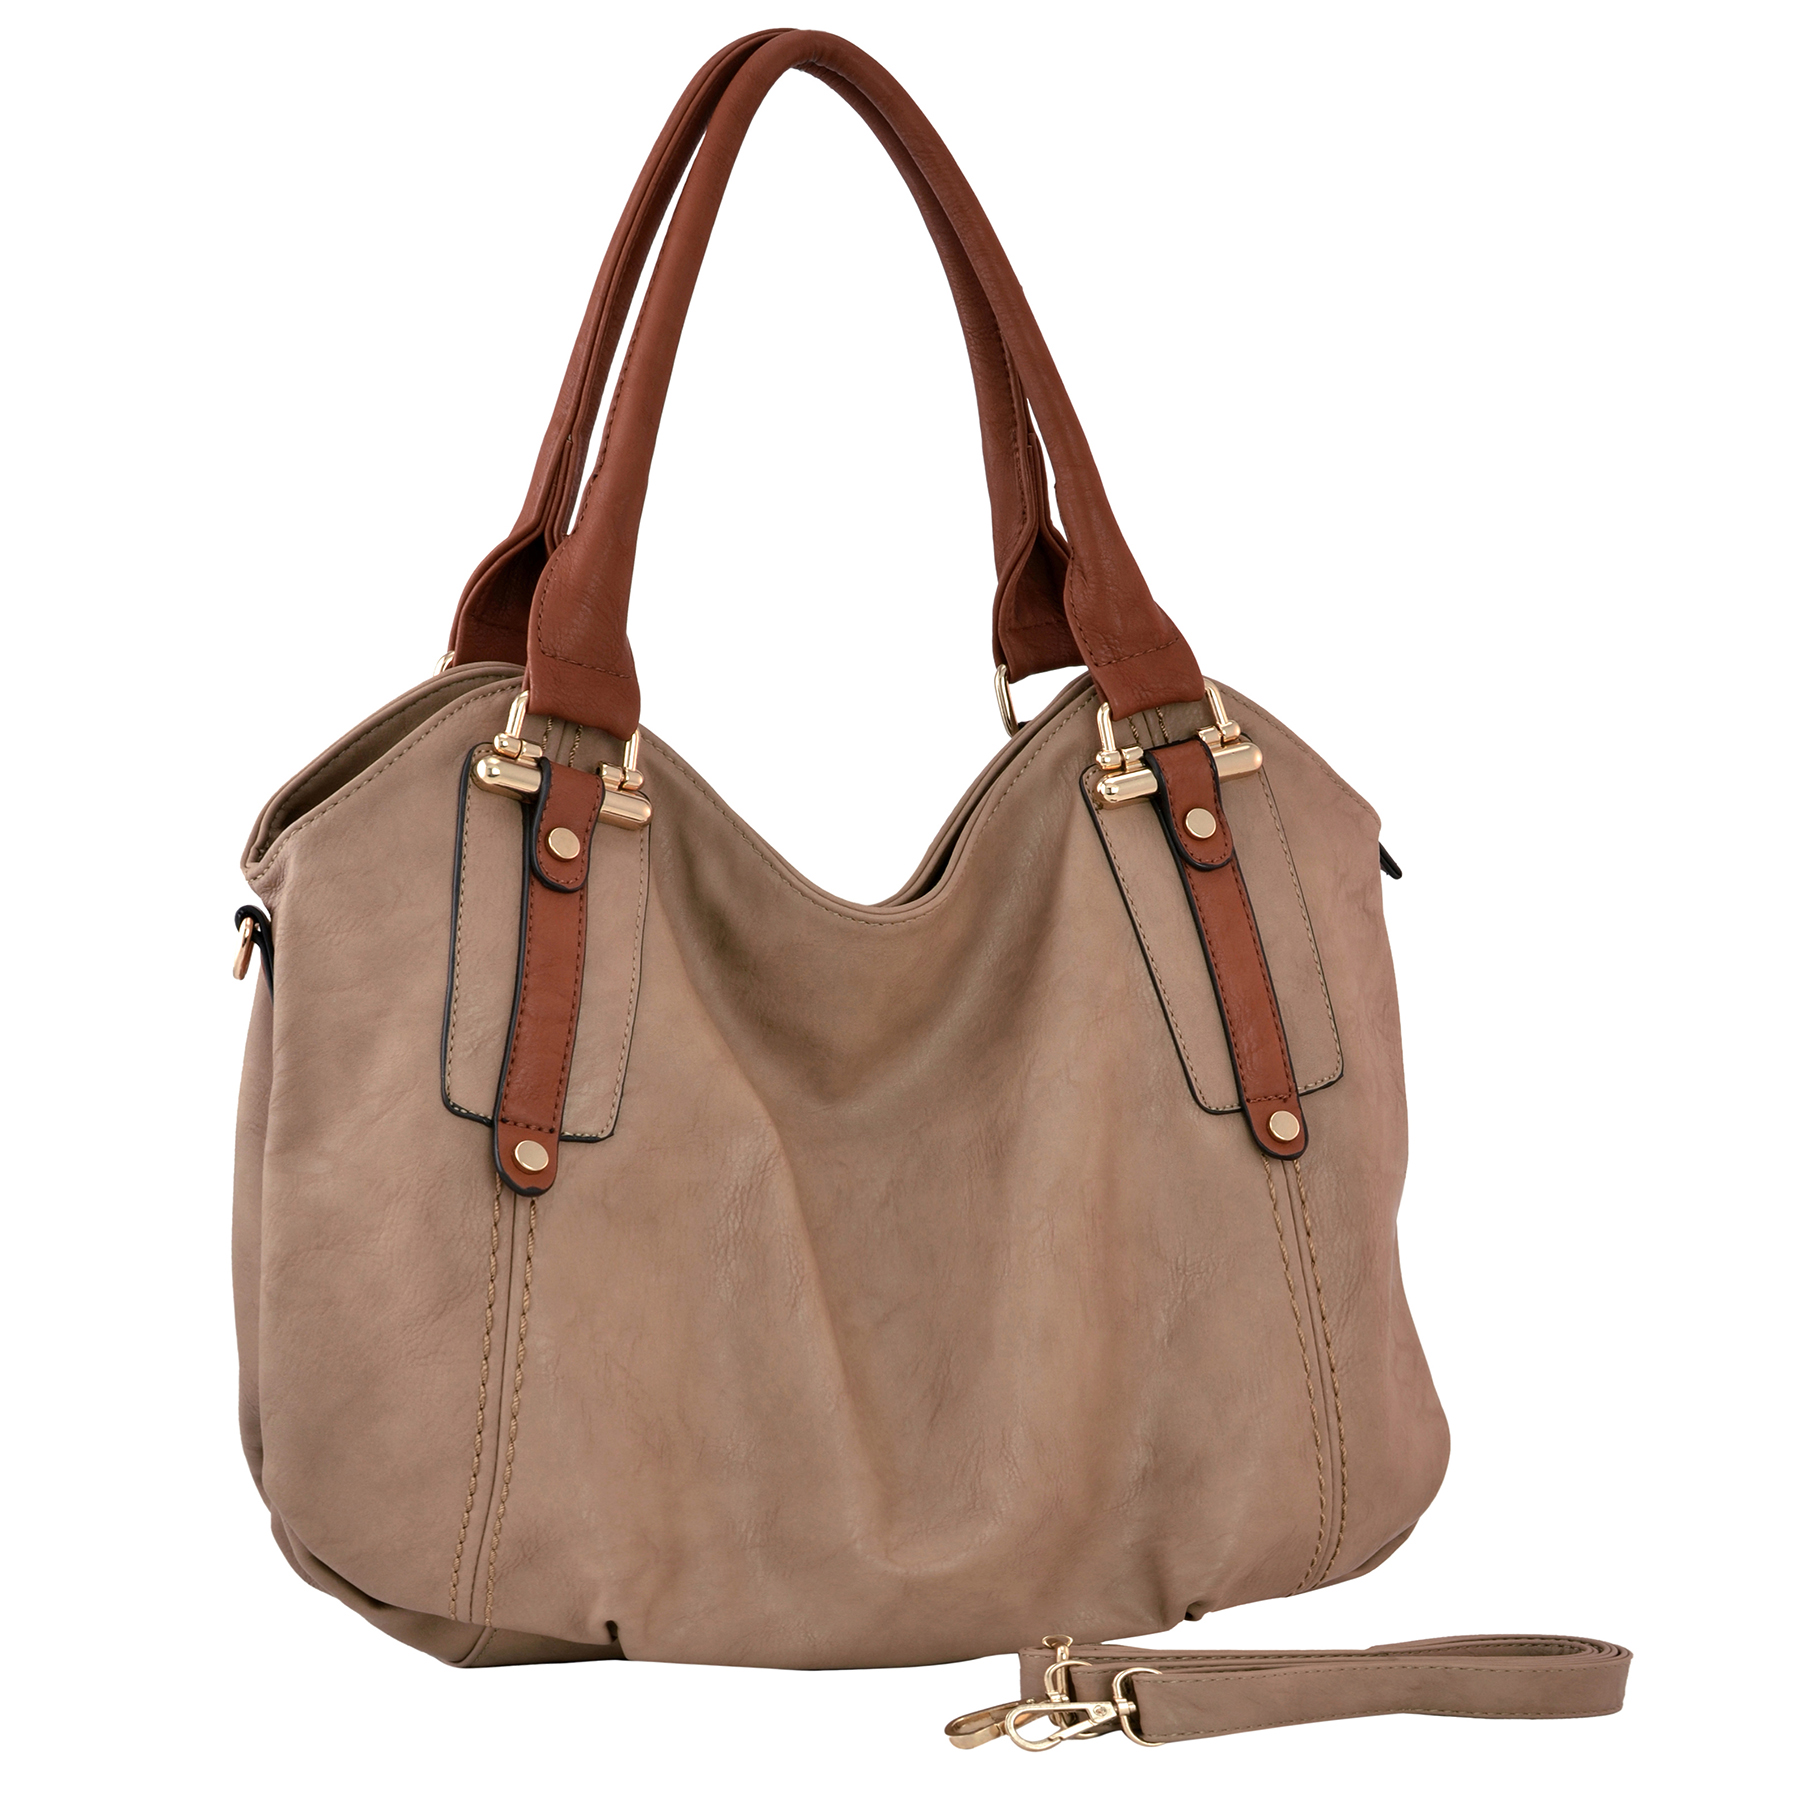 mg-collection-mimi-office-tote-style-handbag-jsh-yd-1225kh-1.jpg